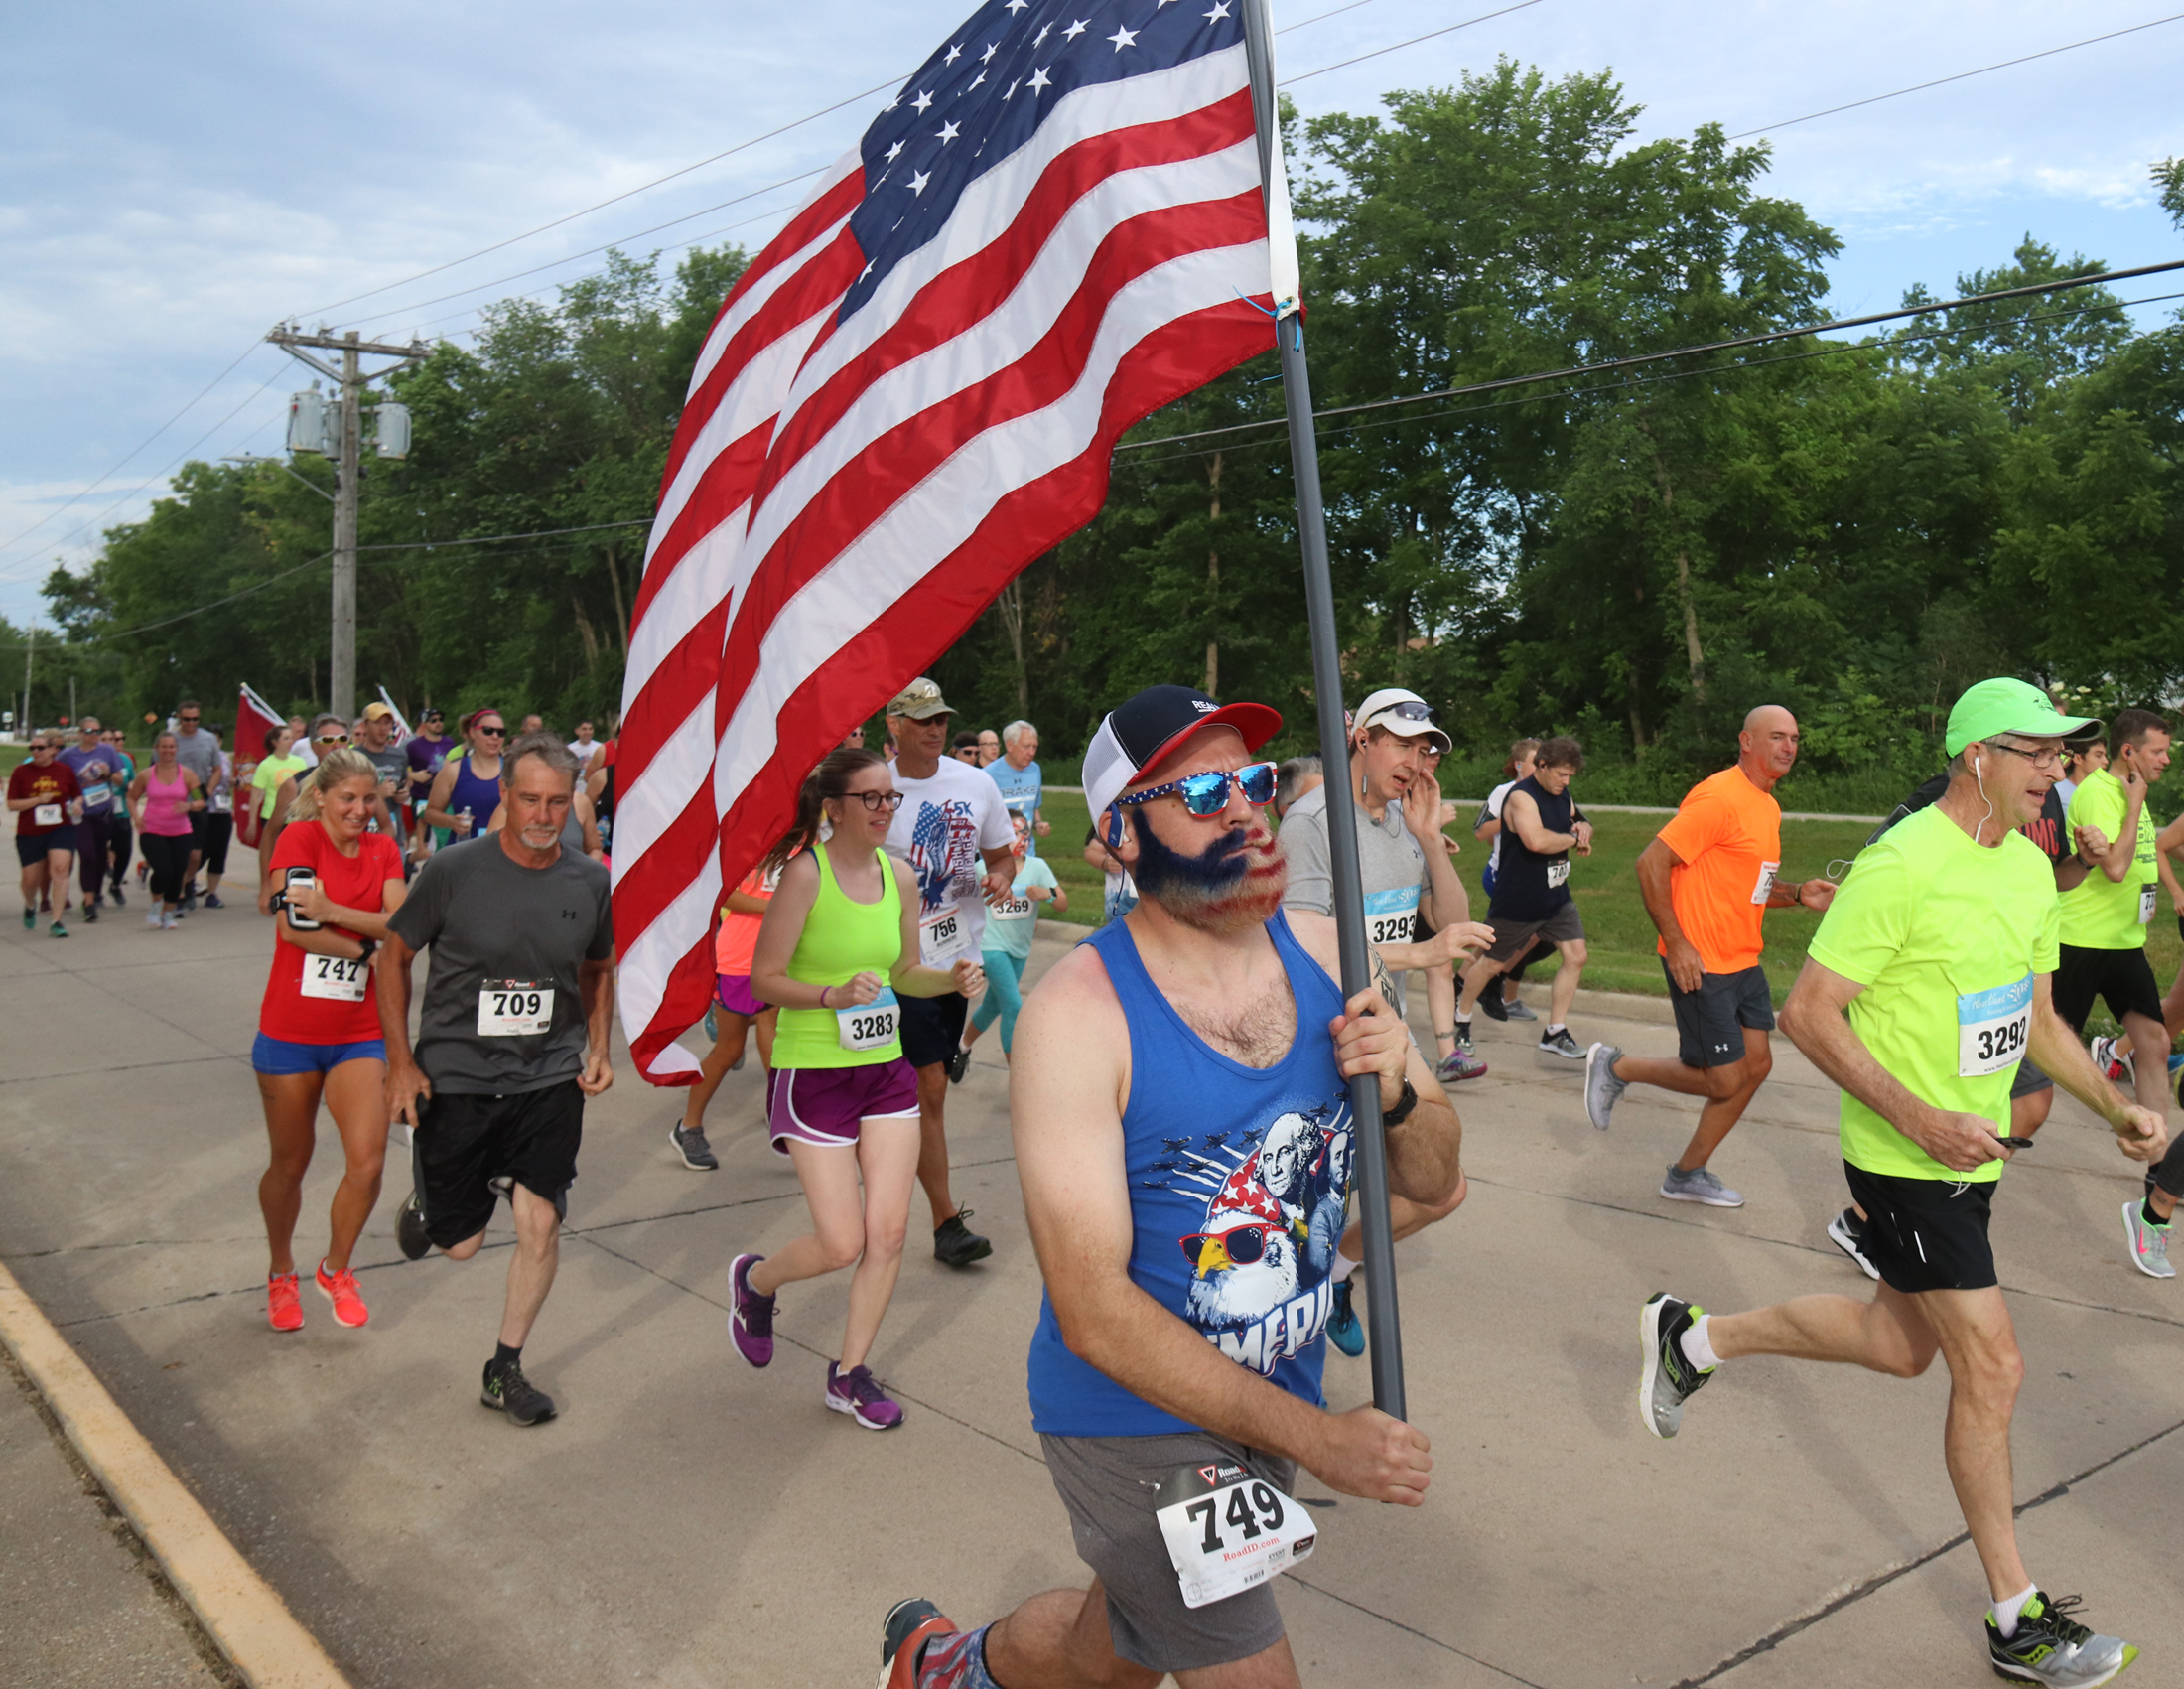 Flag Wave of Runners at CW Firecracker 5K/5M